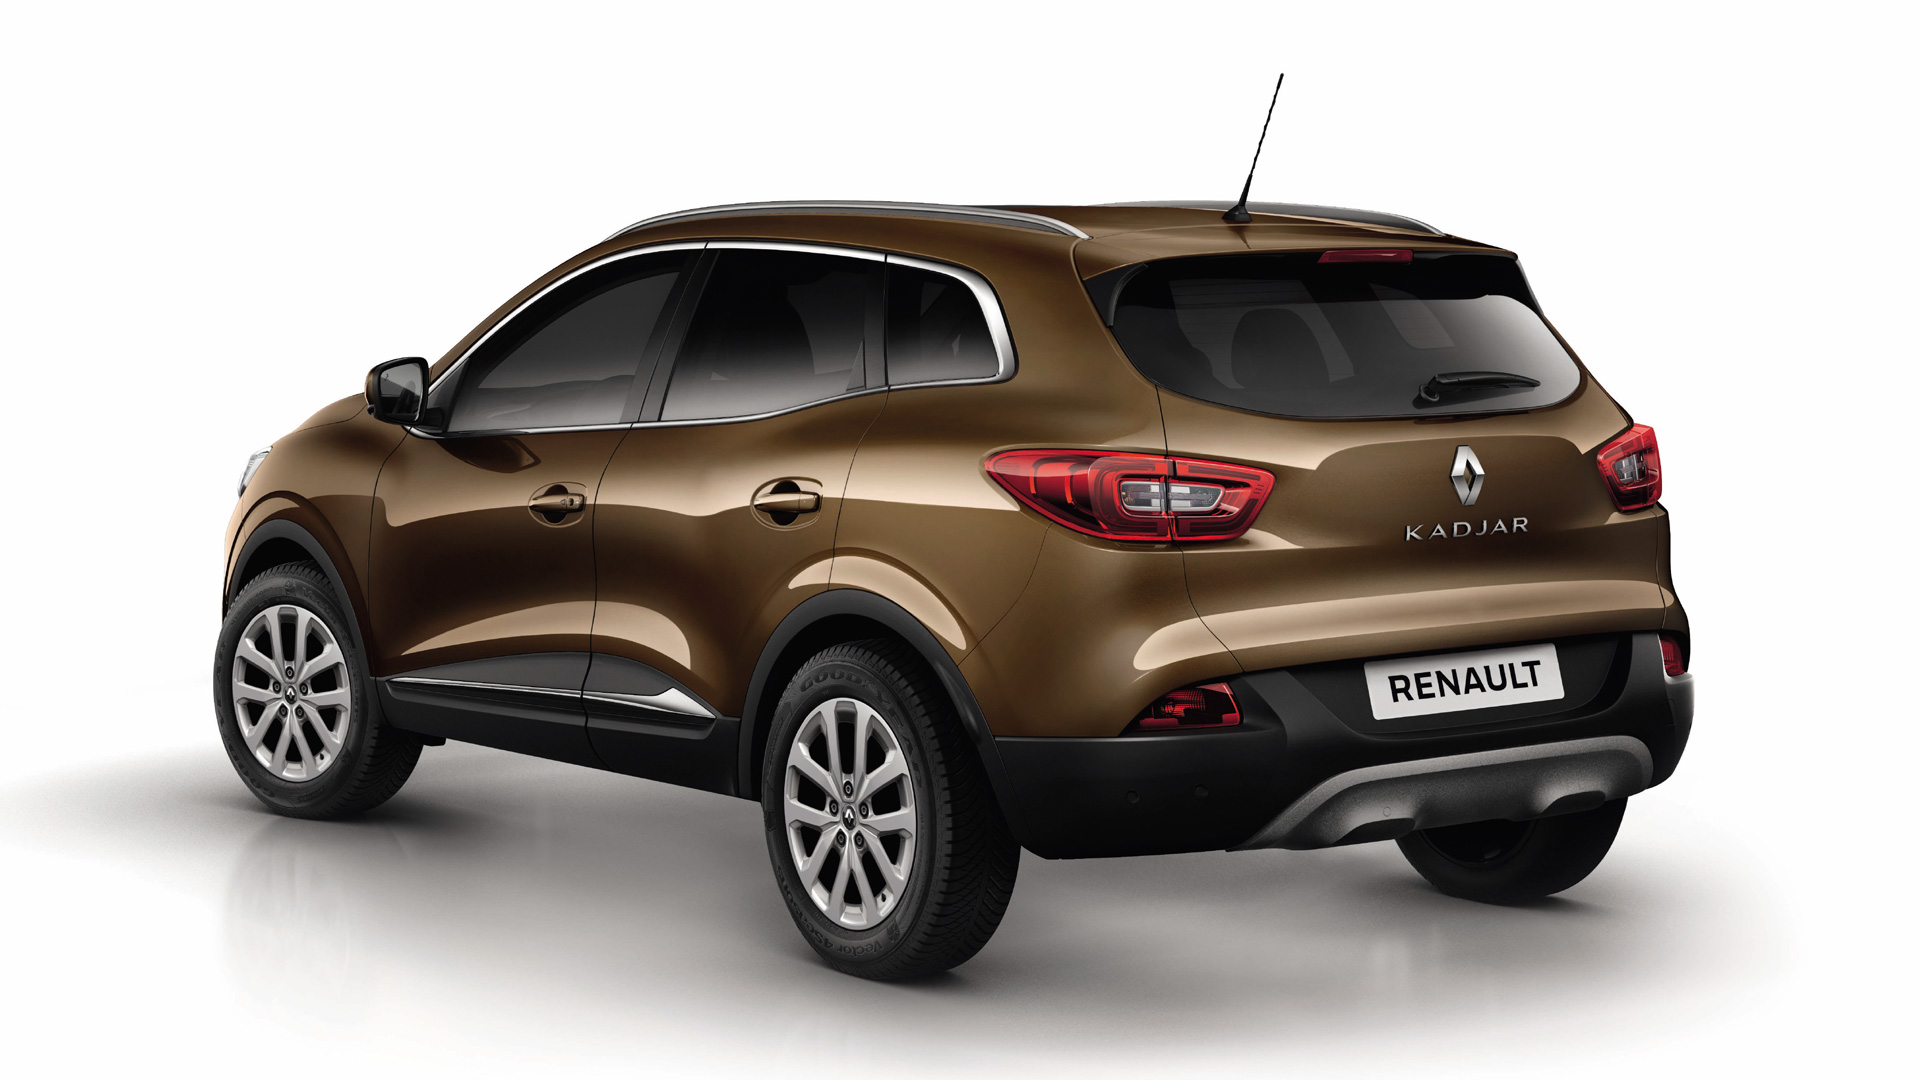 renault kadjar renault chartres. Black Bedroom Furniture Sets. Home Design Ideas